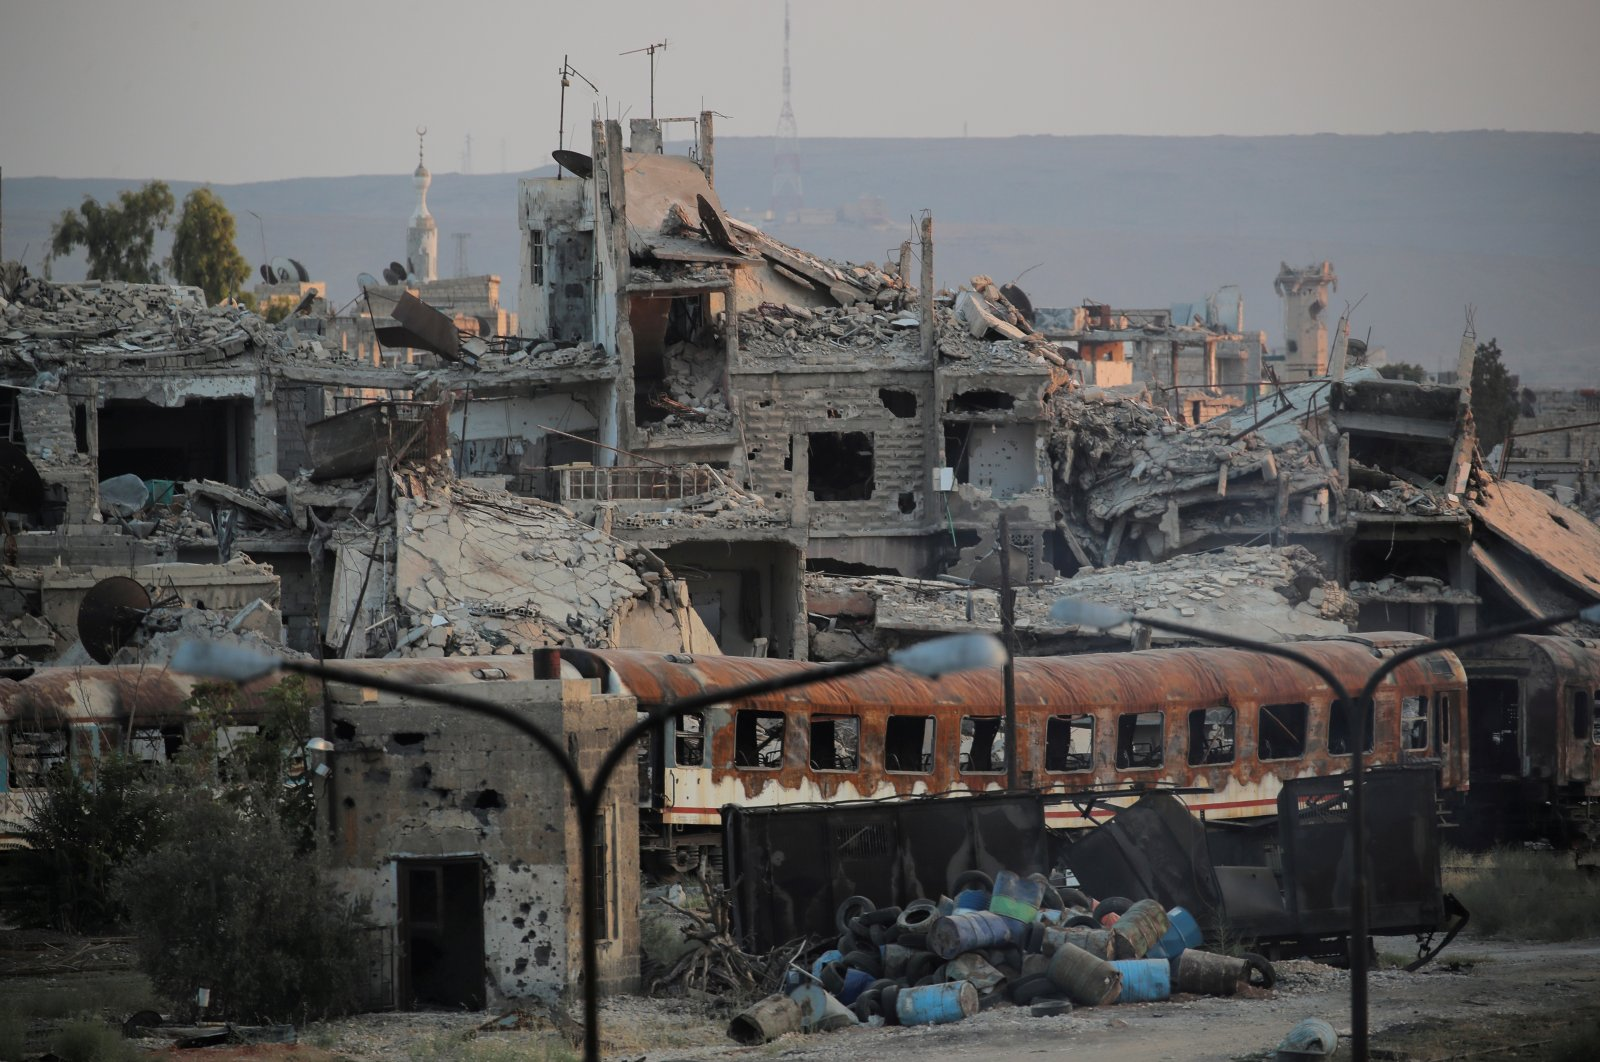 Destroyed buildings are seen near a train station in Damascus, Syria, Sept. 12, 2018. (Reuters Photo)